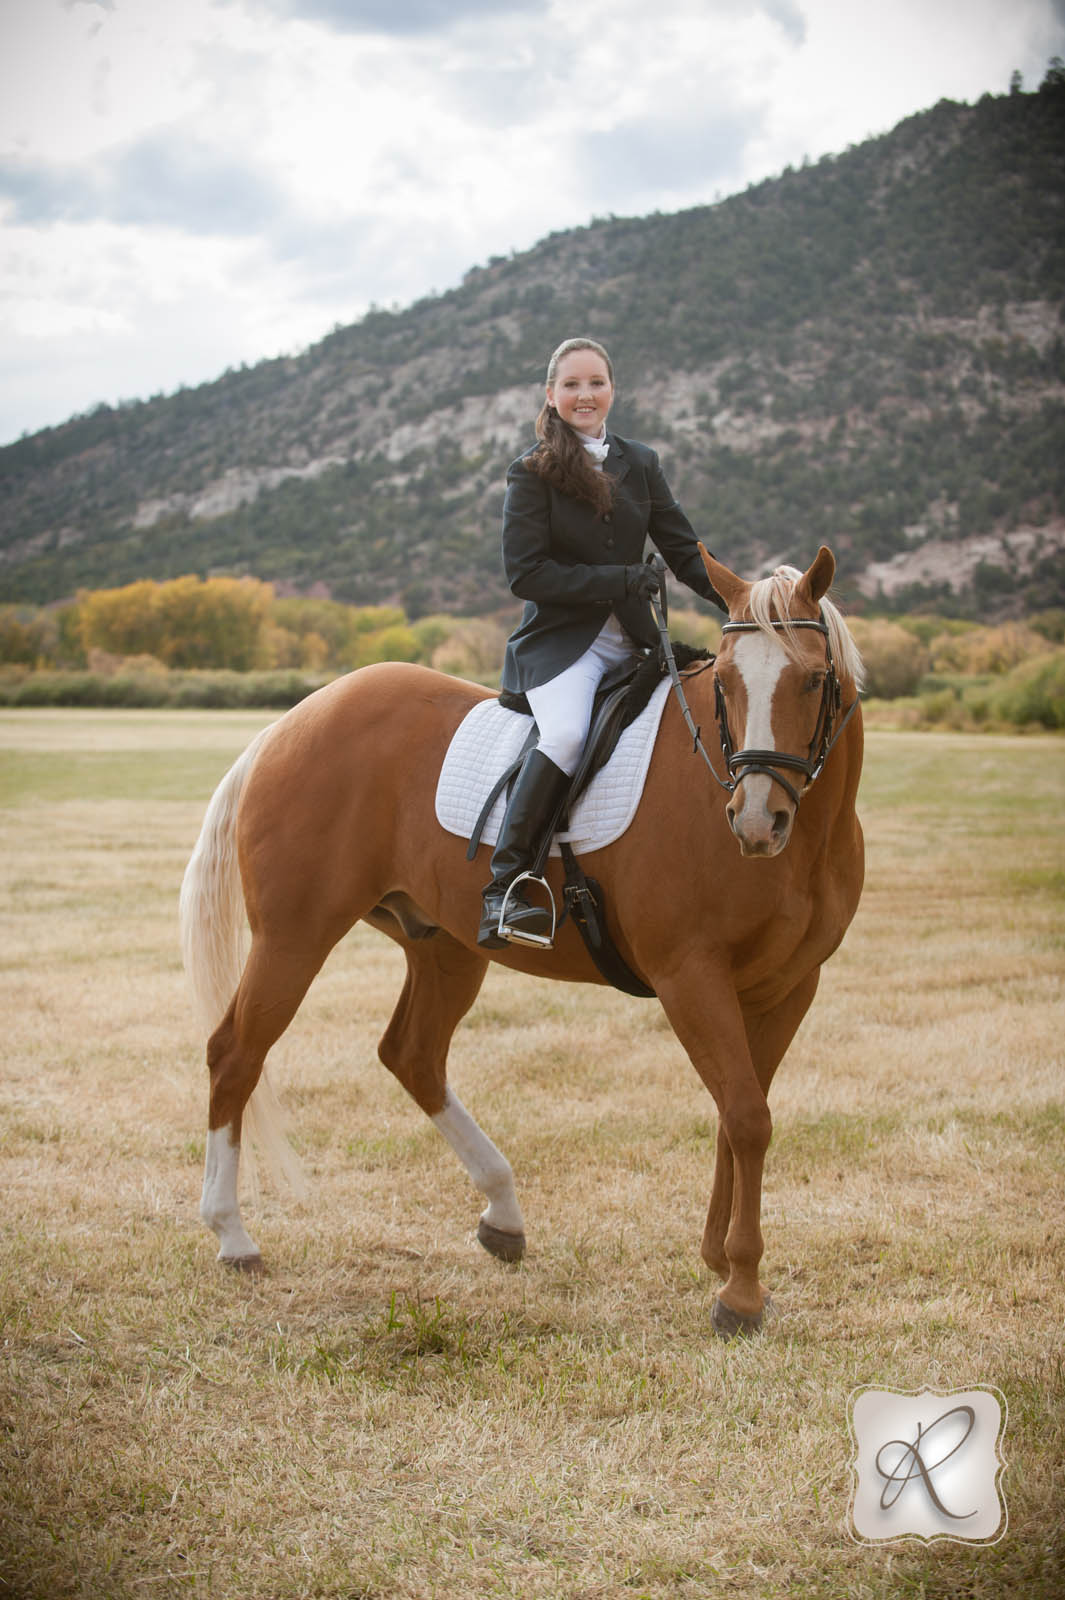 Emma S Senior Pictures With Her Horse